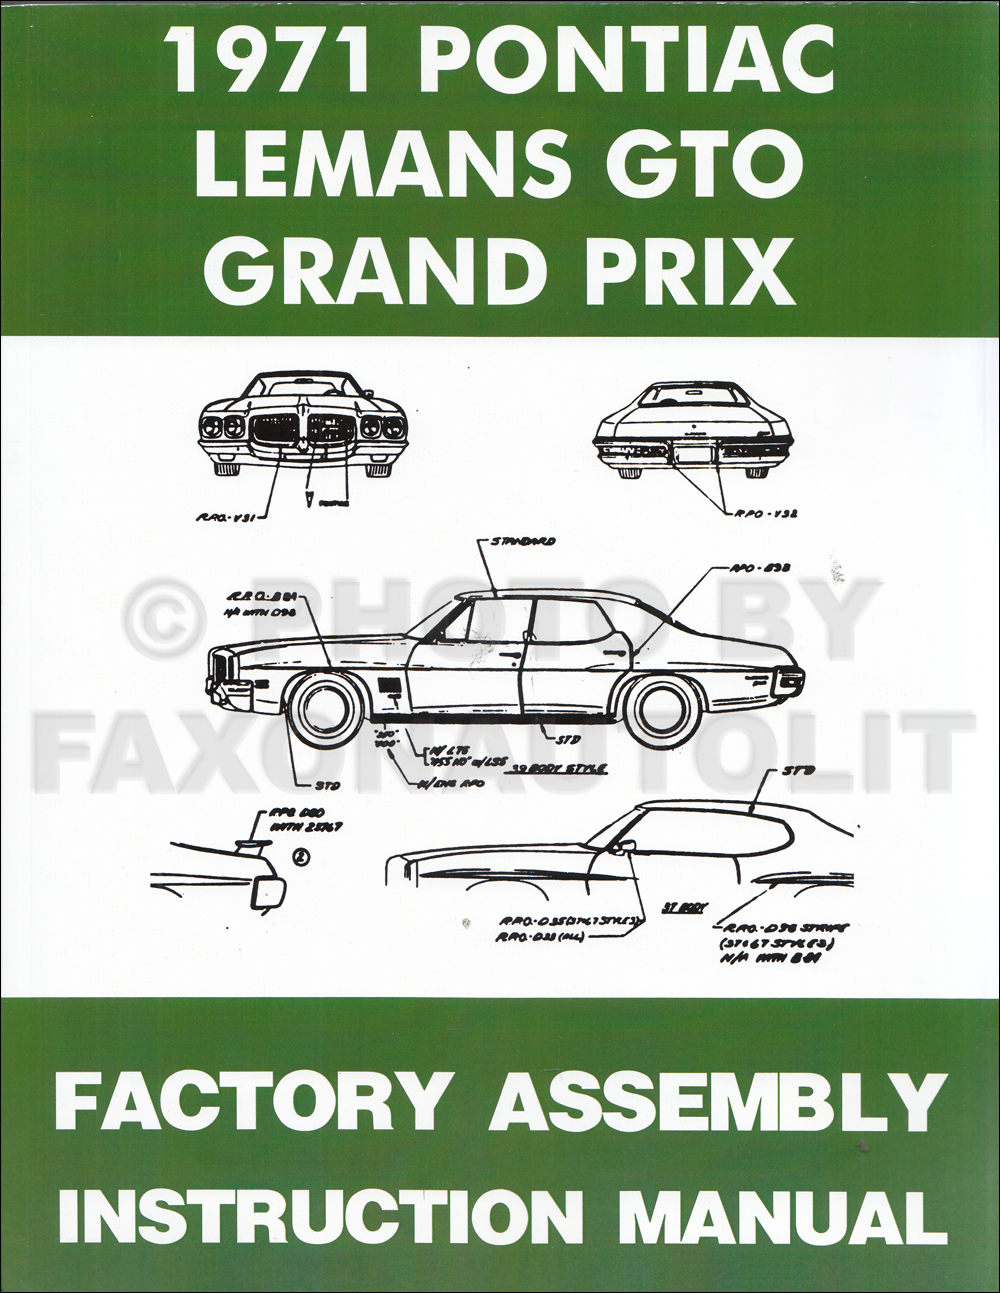 1971 Pontiac Assembly Manual Reprint  - GTO, Grand Prix, LeMans